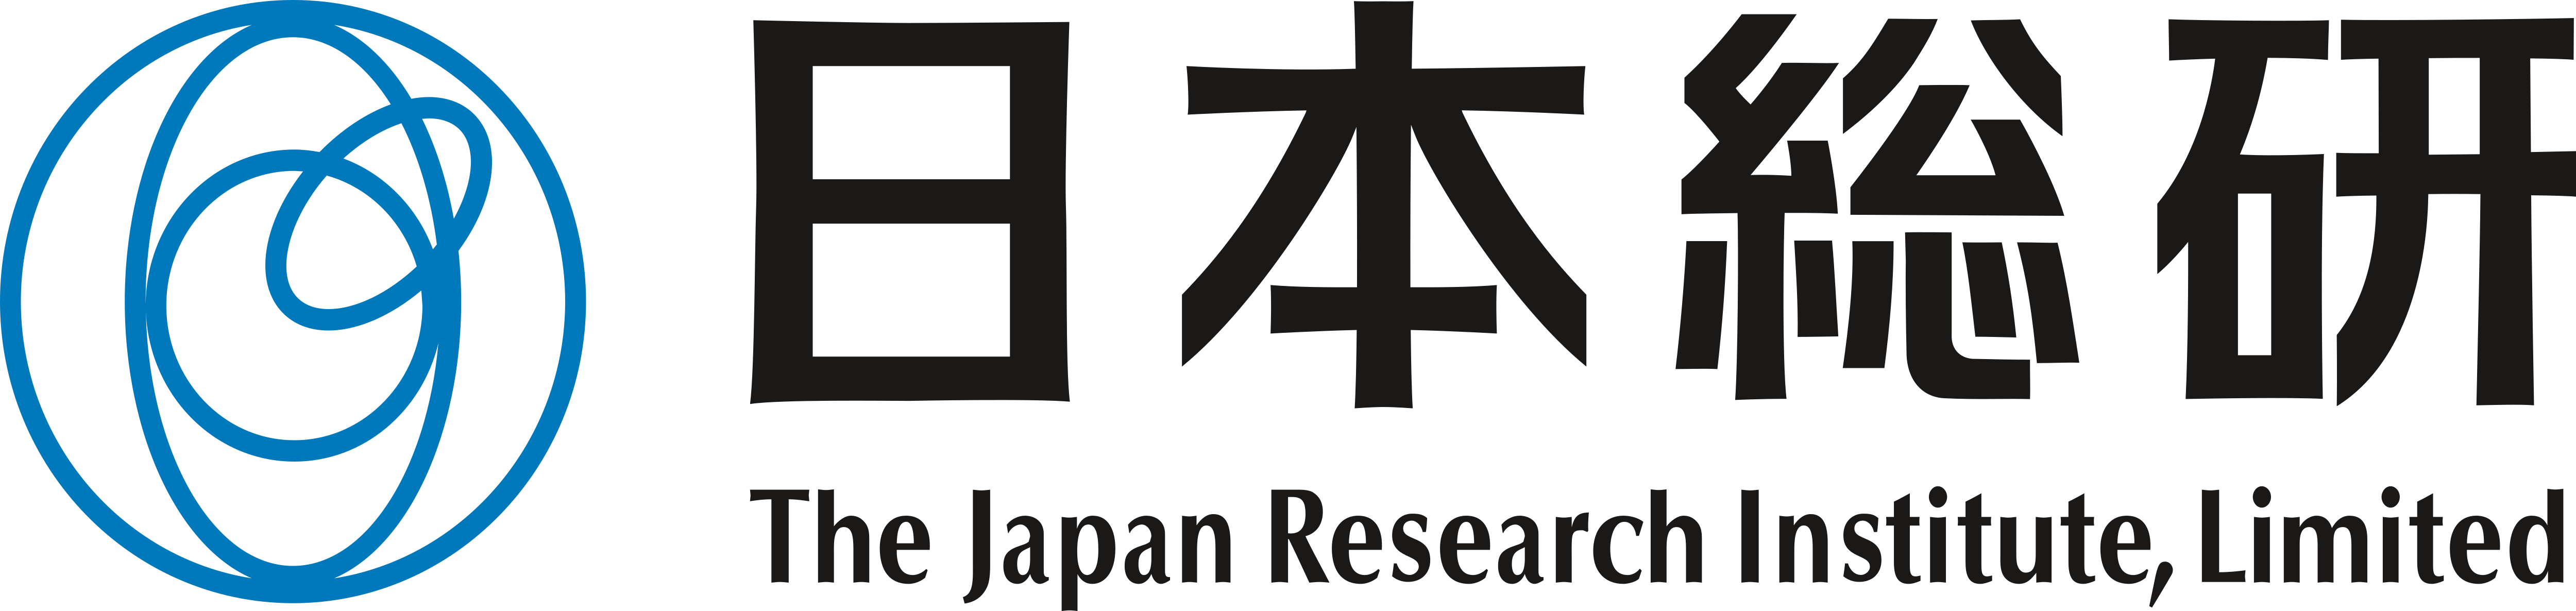 The Japan Research Institute – Logos Download